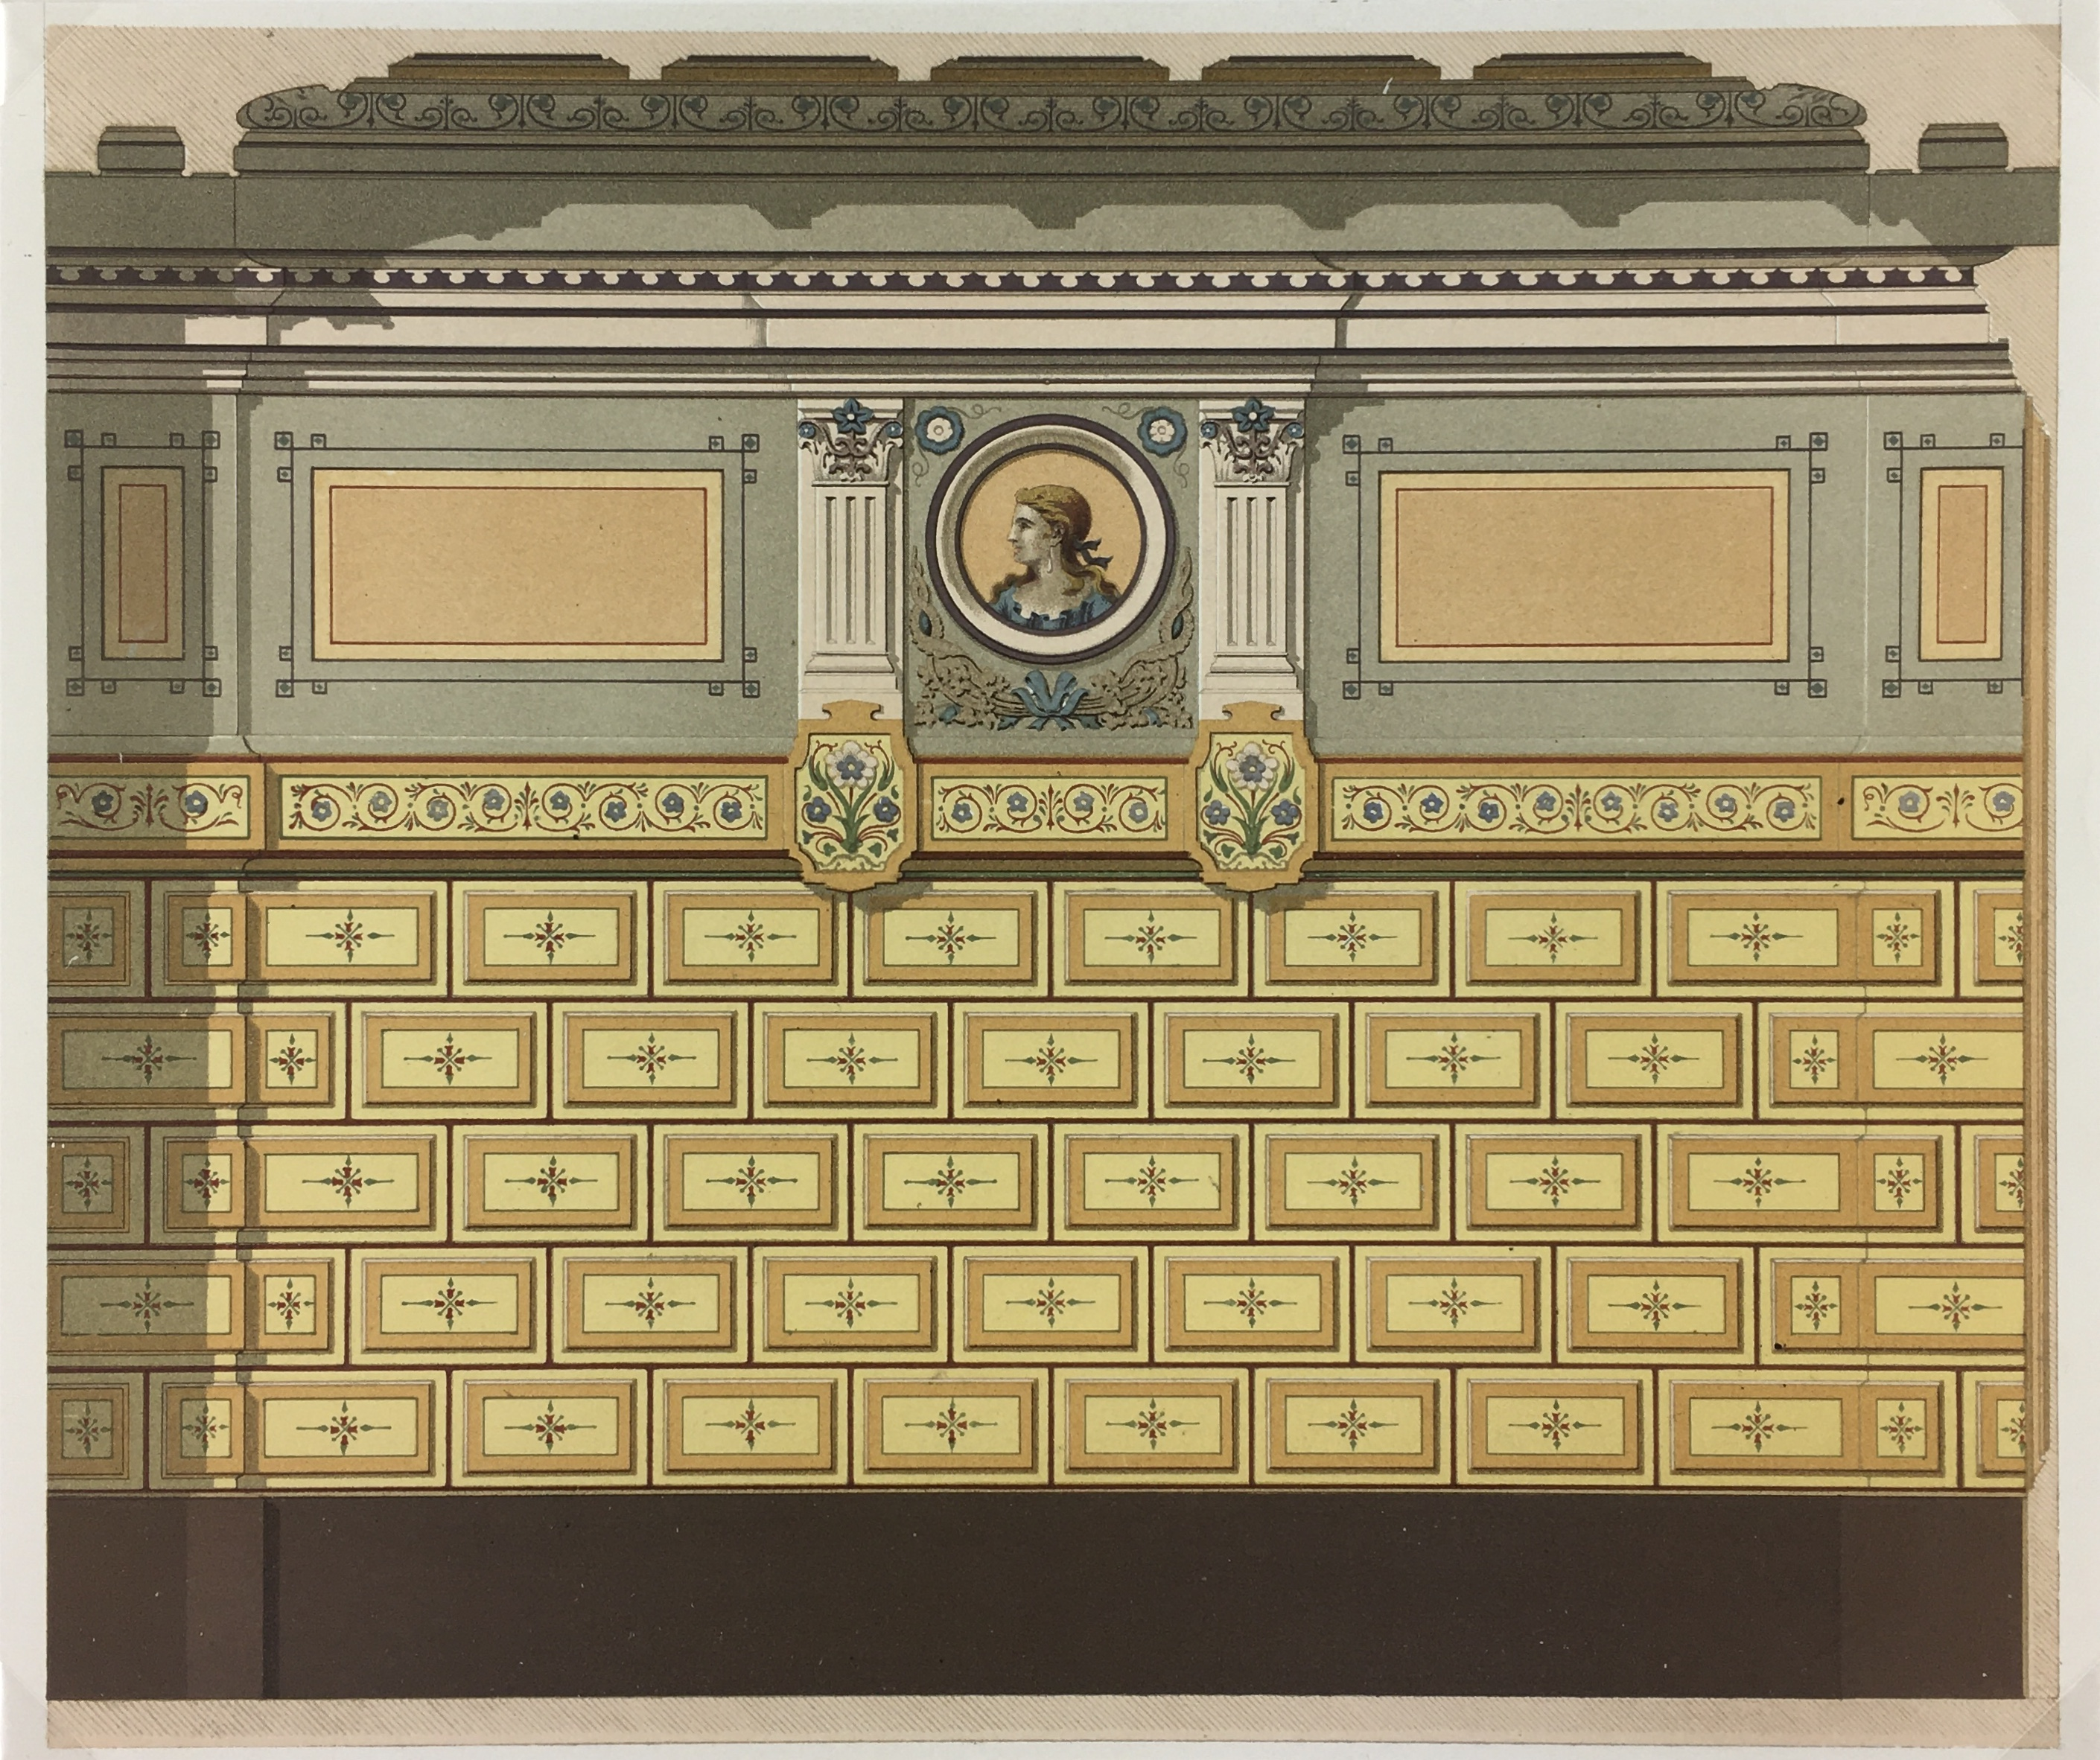 Architecture Print - Decor, c.1880